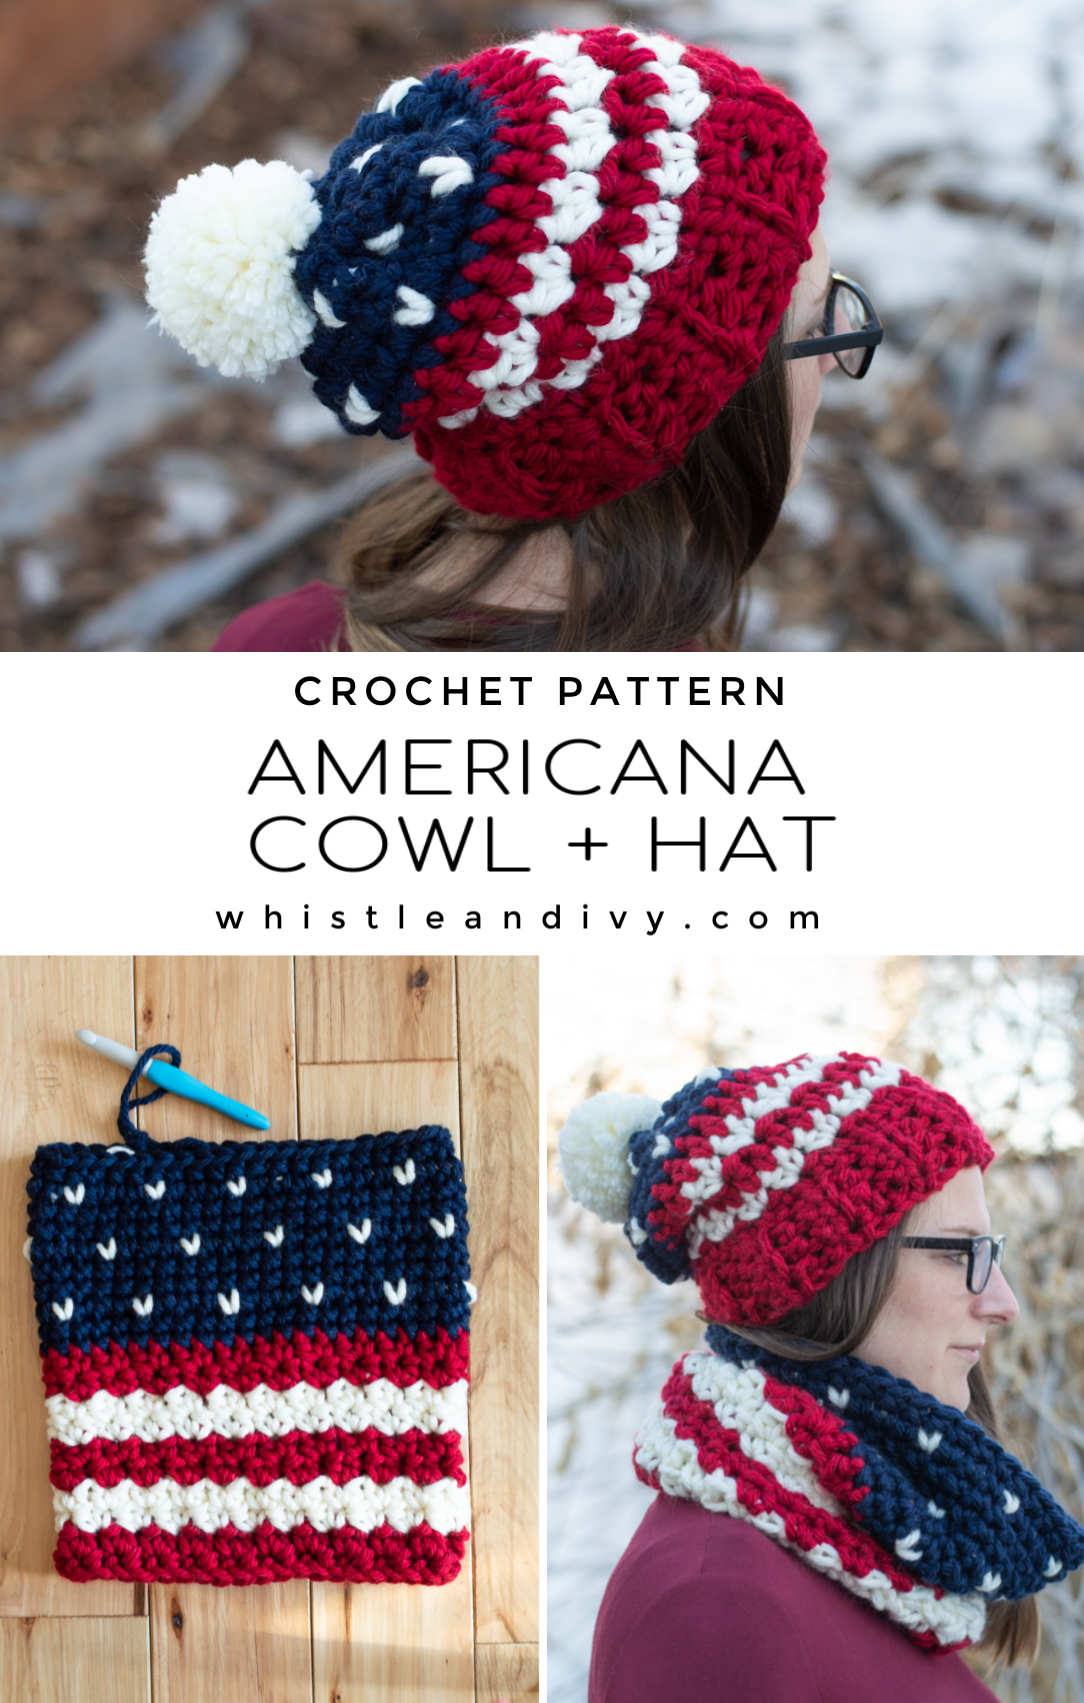 free crochet pattern Americana USA patriotic crochet hat and cowl pattern